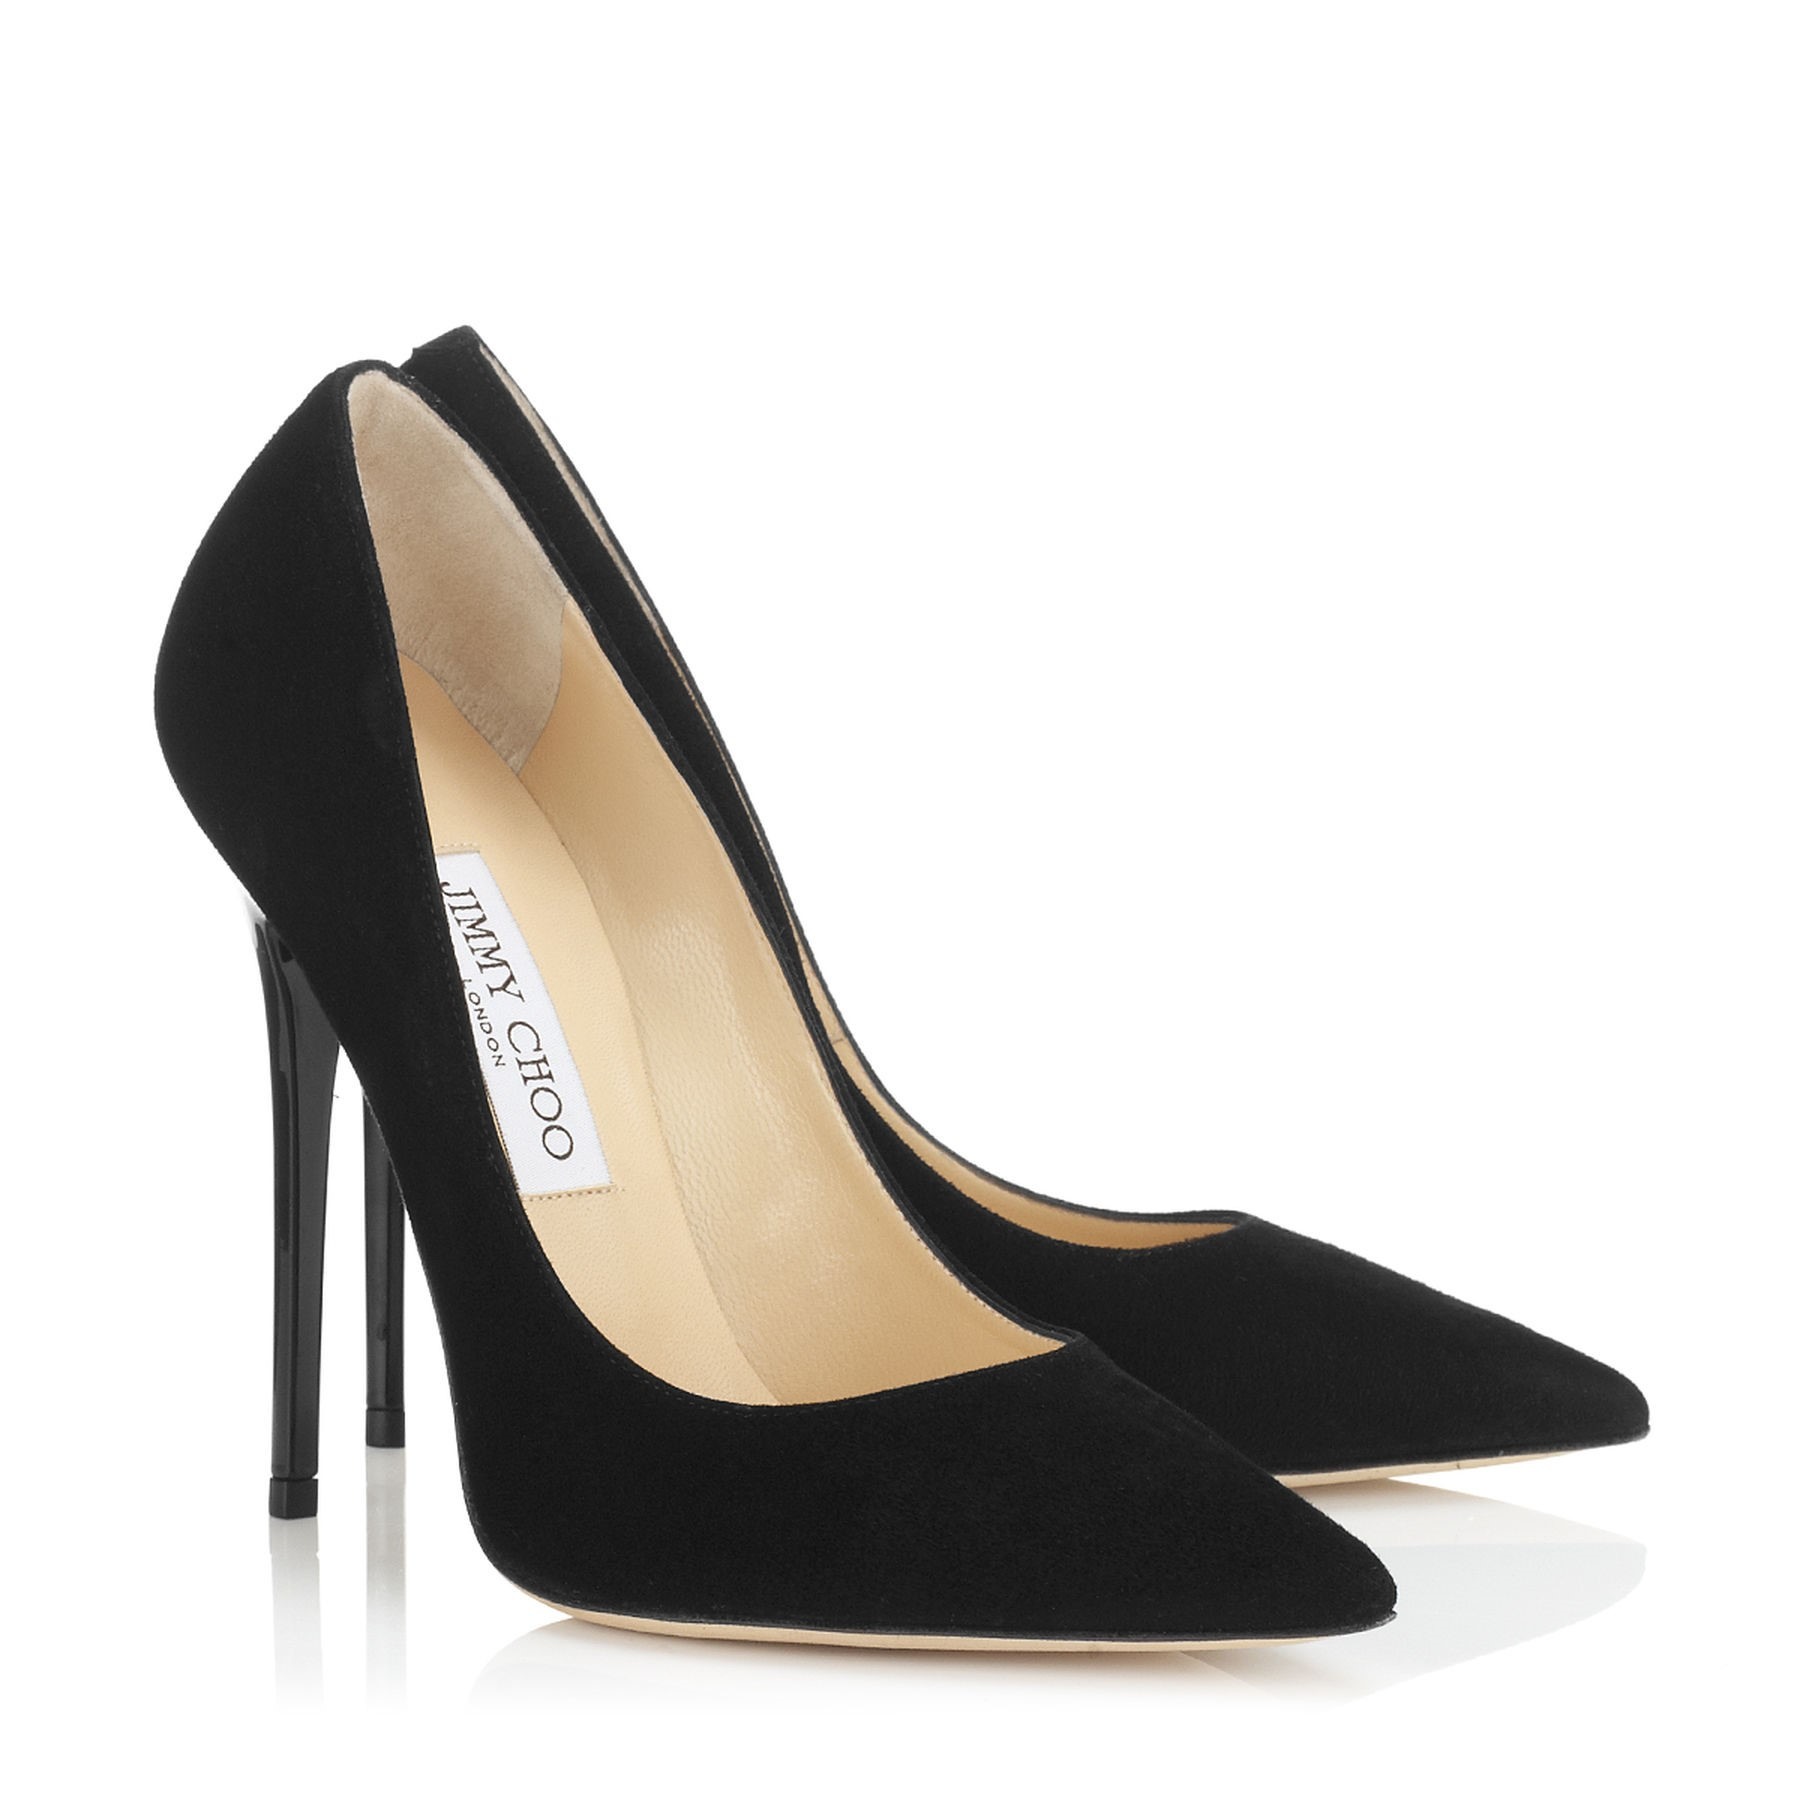 Essential Shoes essential shoes - Black Pums - Essential Shoes Every Women Should Have – 2018